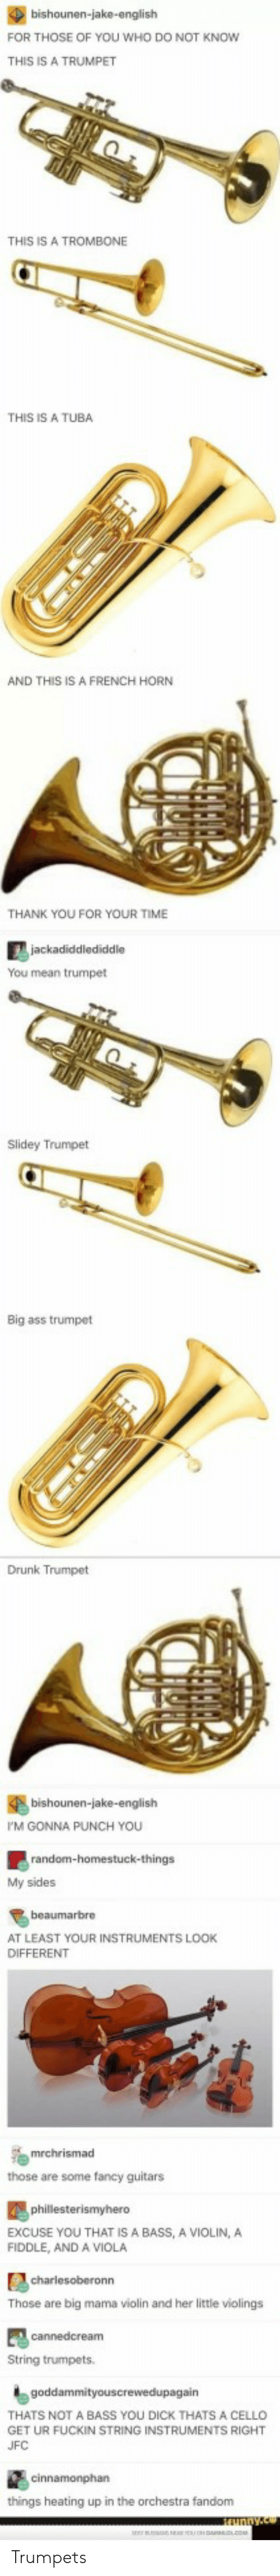 My Sides: FOR THOSE OF YOU WHO DO NOT KNOW  THIS IS A TRUMPET  THIS IS A TROMBONE  THIS IS A TUBA  AND THIS IS A FRENCH HORN  THANK YOU FOR YOUR TIME  You mean trumpet  Slidey Trumpet  Big ass trumpet  Drunk Trumpet  bishounen-jake-english  M GONNA PUNCH YOU  My sides  beaumarbre  AT LEAST YOUR INSTRUMENTS LOOK  DIFFERENT  those are some fancy guitars  EXCUSE YOU THAT IS A BASS, A VIOLIN, A  FIDDLE, AND A VIOLA  Those are big mama violin and her little violings  String trumpets.  THATS NOT A BASS YOU DICK THATS A CELLO  GET UR FUCKIN STRING INSTRUMENTS RIGHT  UFC  things heating up in the orchestra fandonm Trumpets